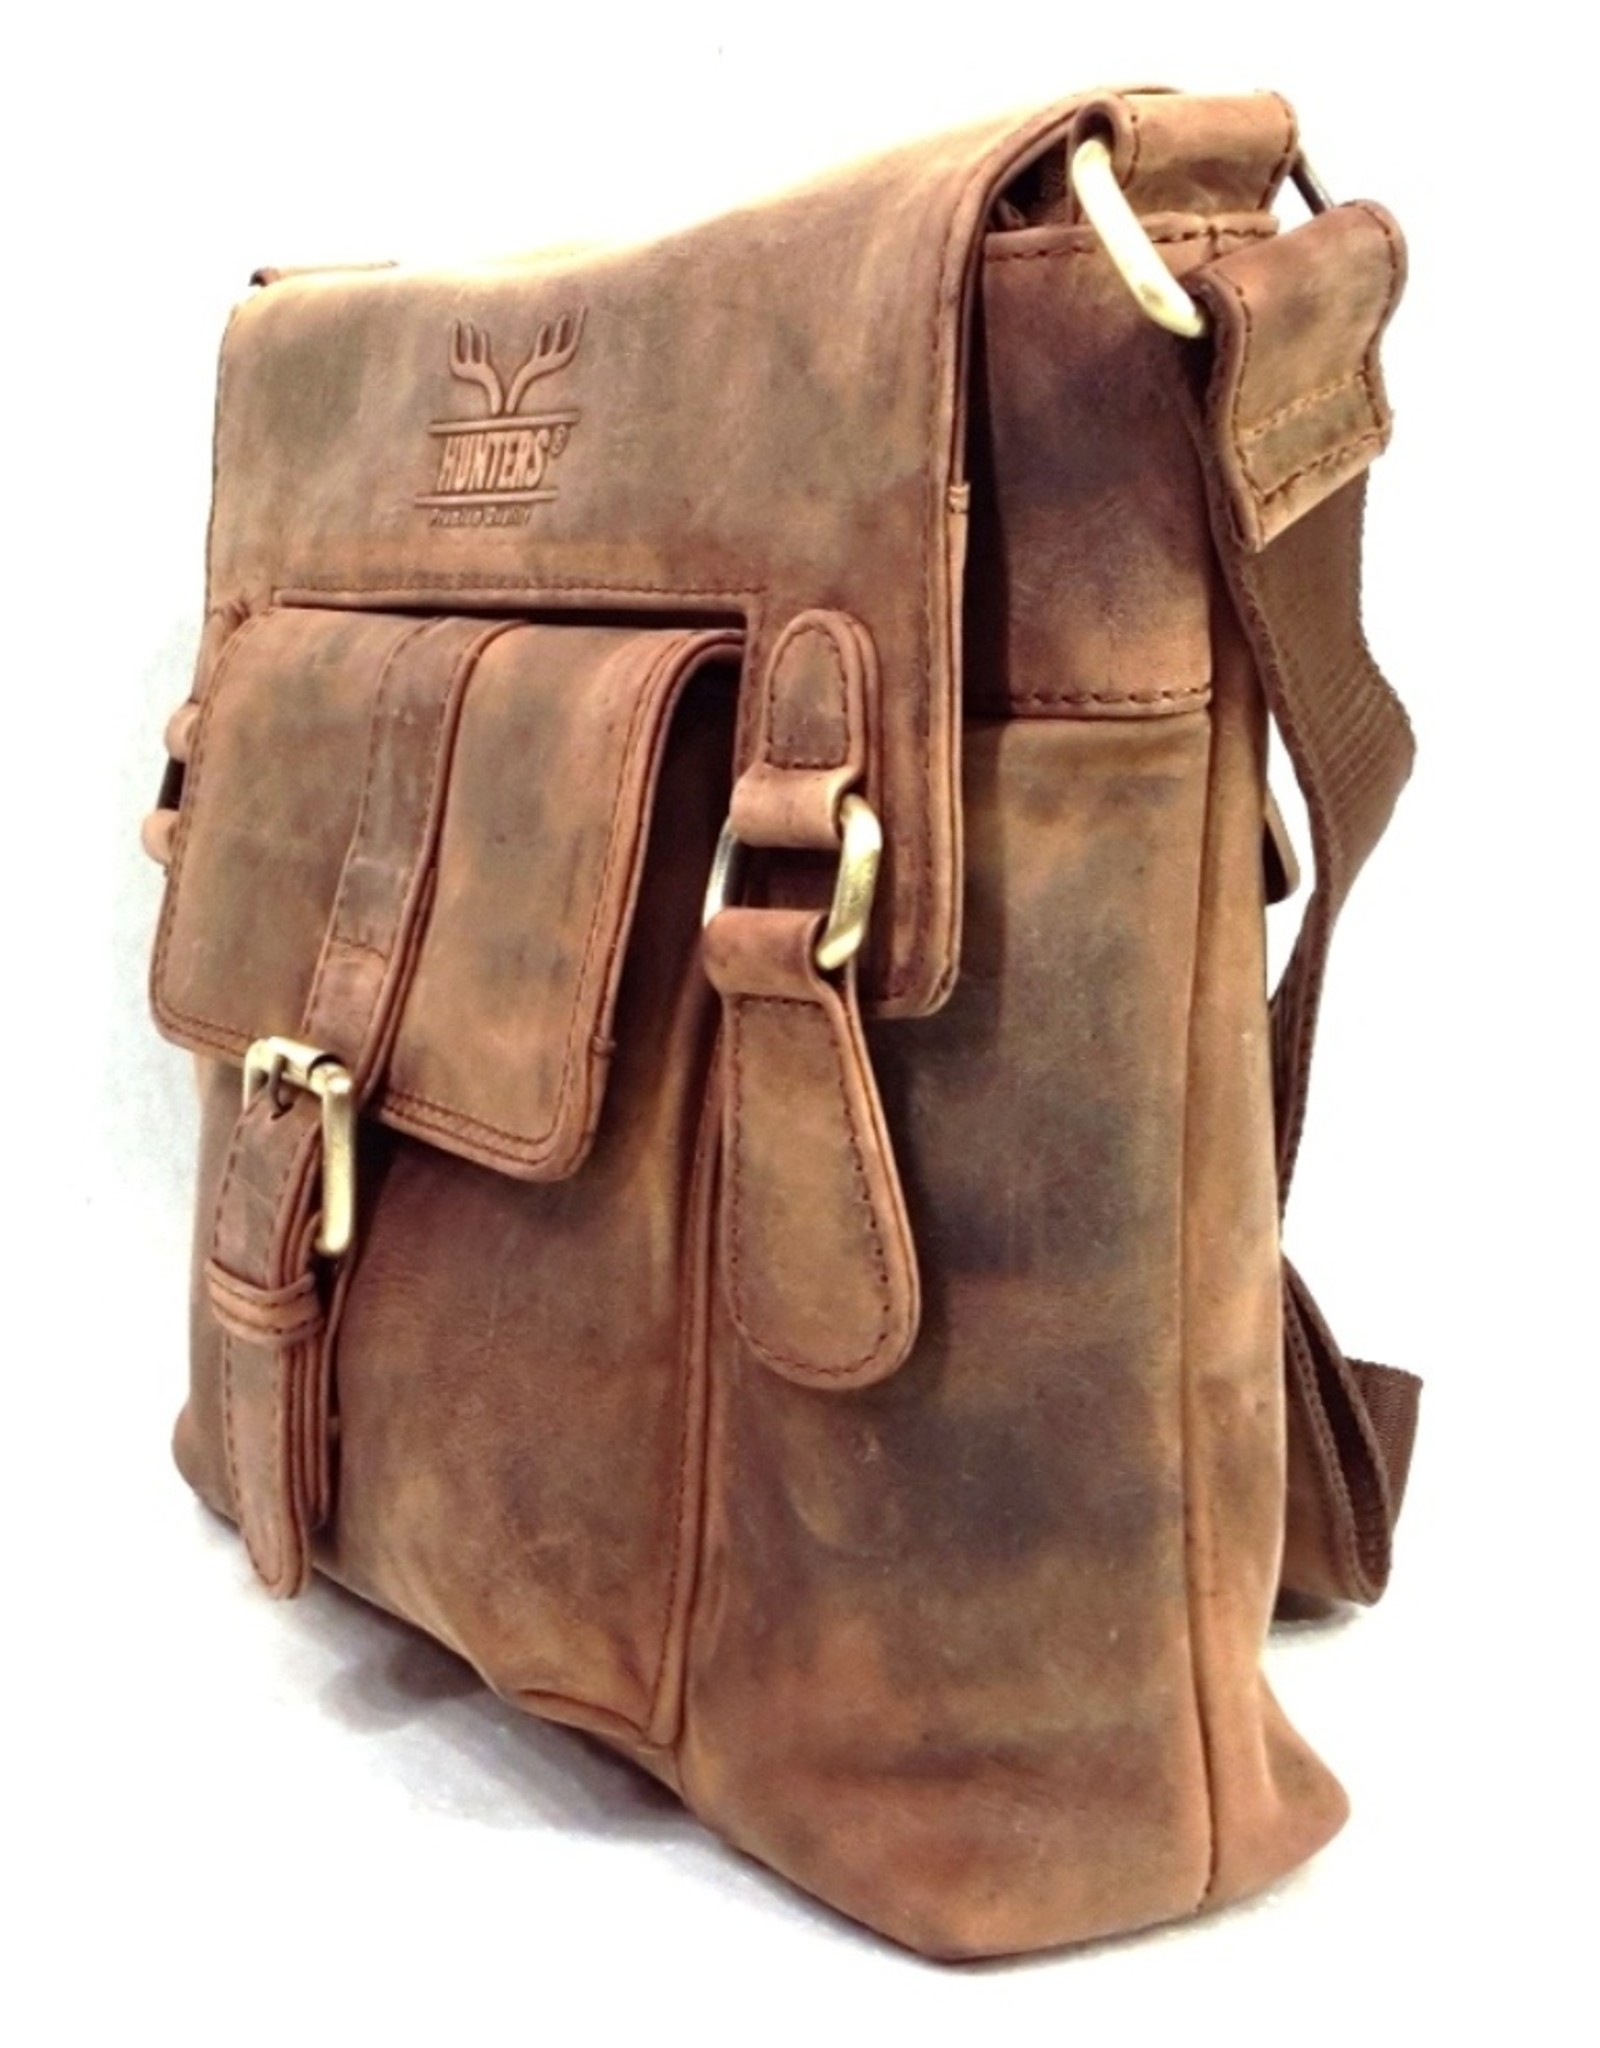 Hunters Leather bags - Hunters Leather shoulder bag with cover and front pocket